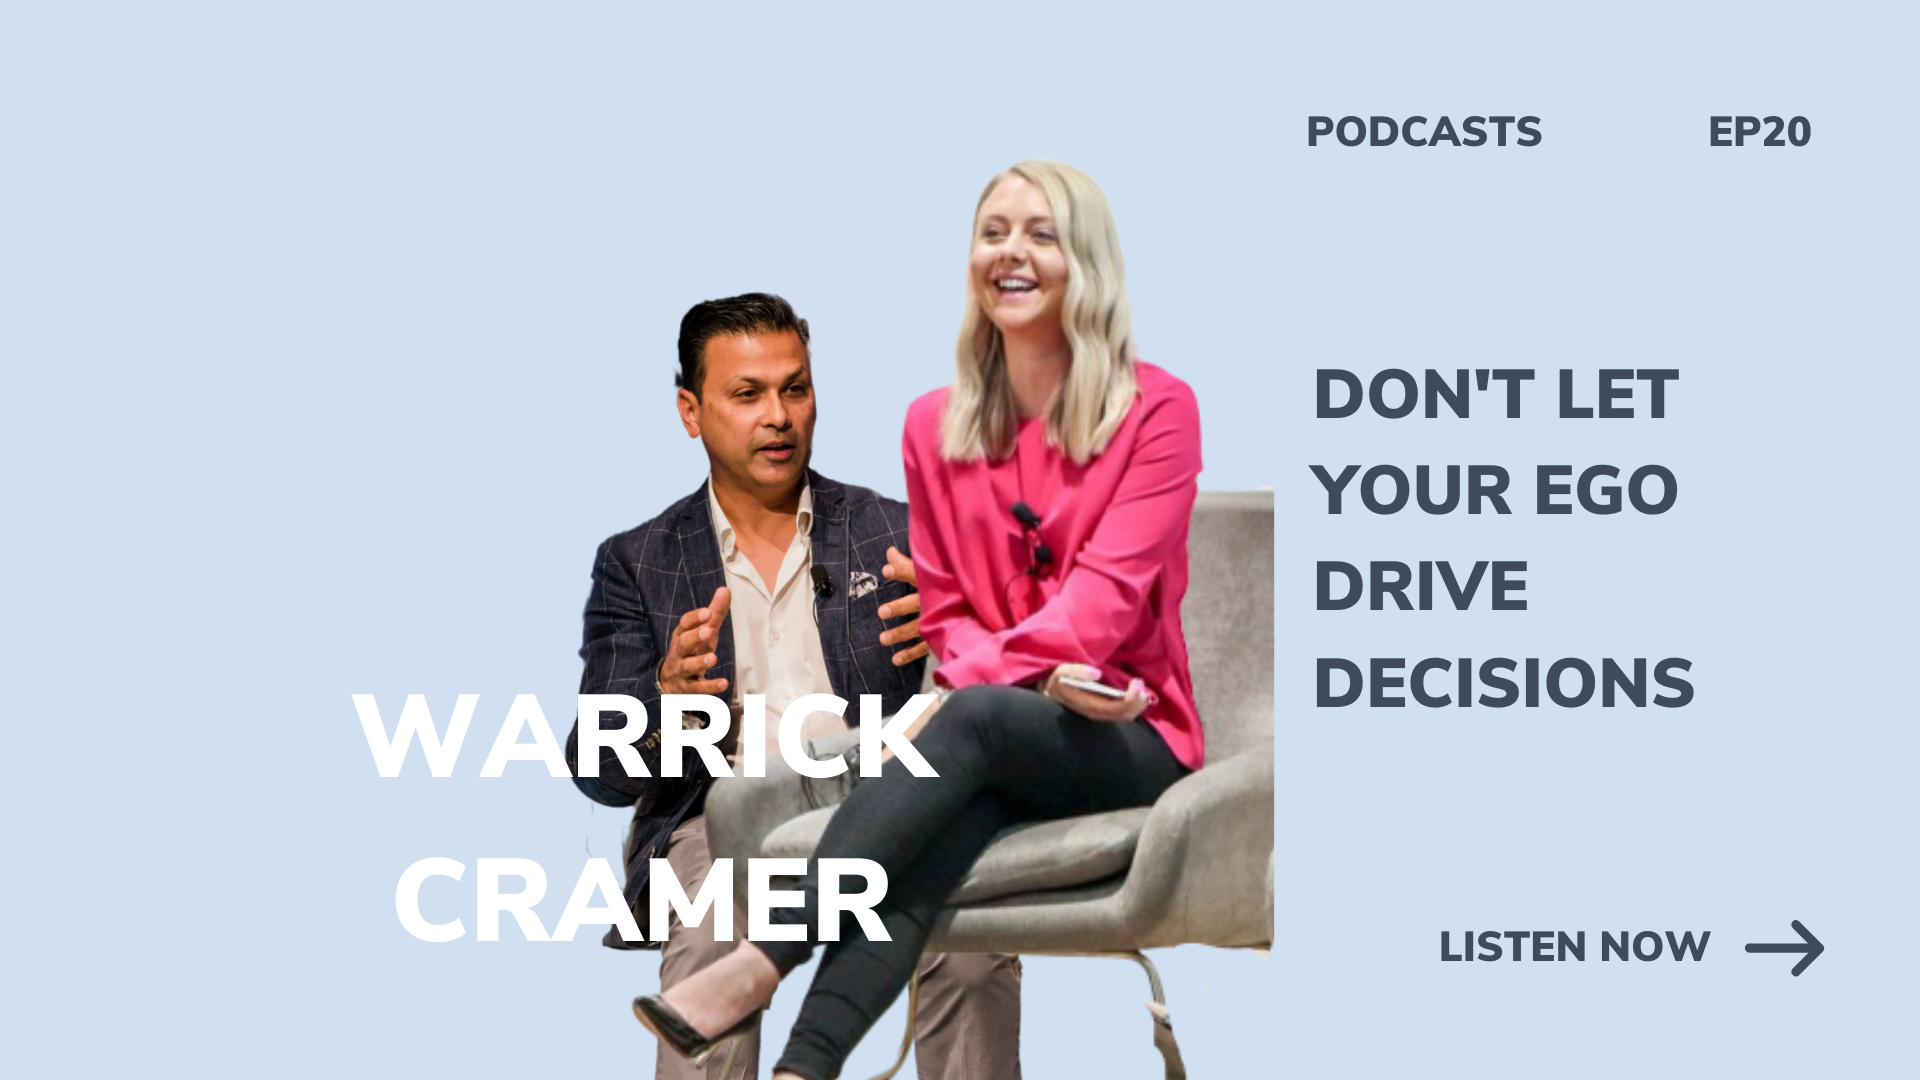 Don't let your ego drive decisions warrick cramer the mind to lead podcast